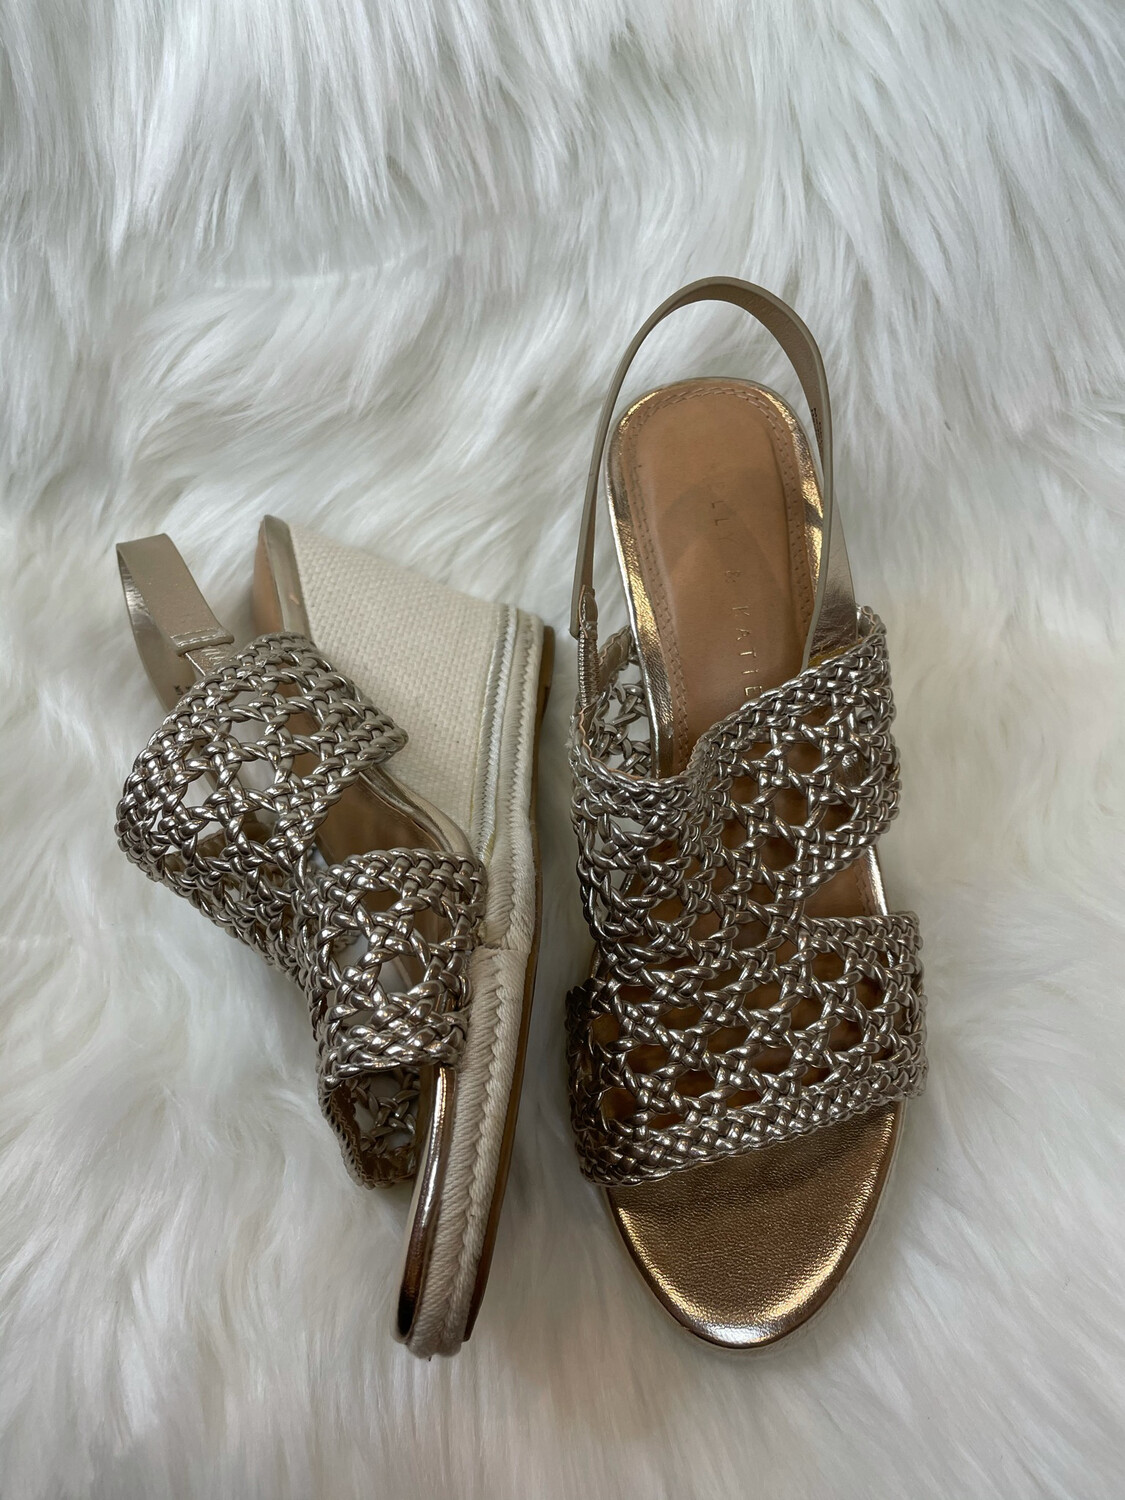 Kelly & Katie Metallic Gold Slingback Wedges - Size 8